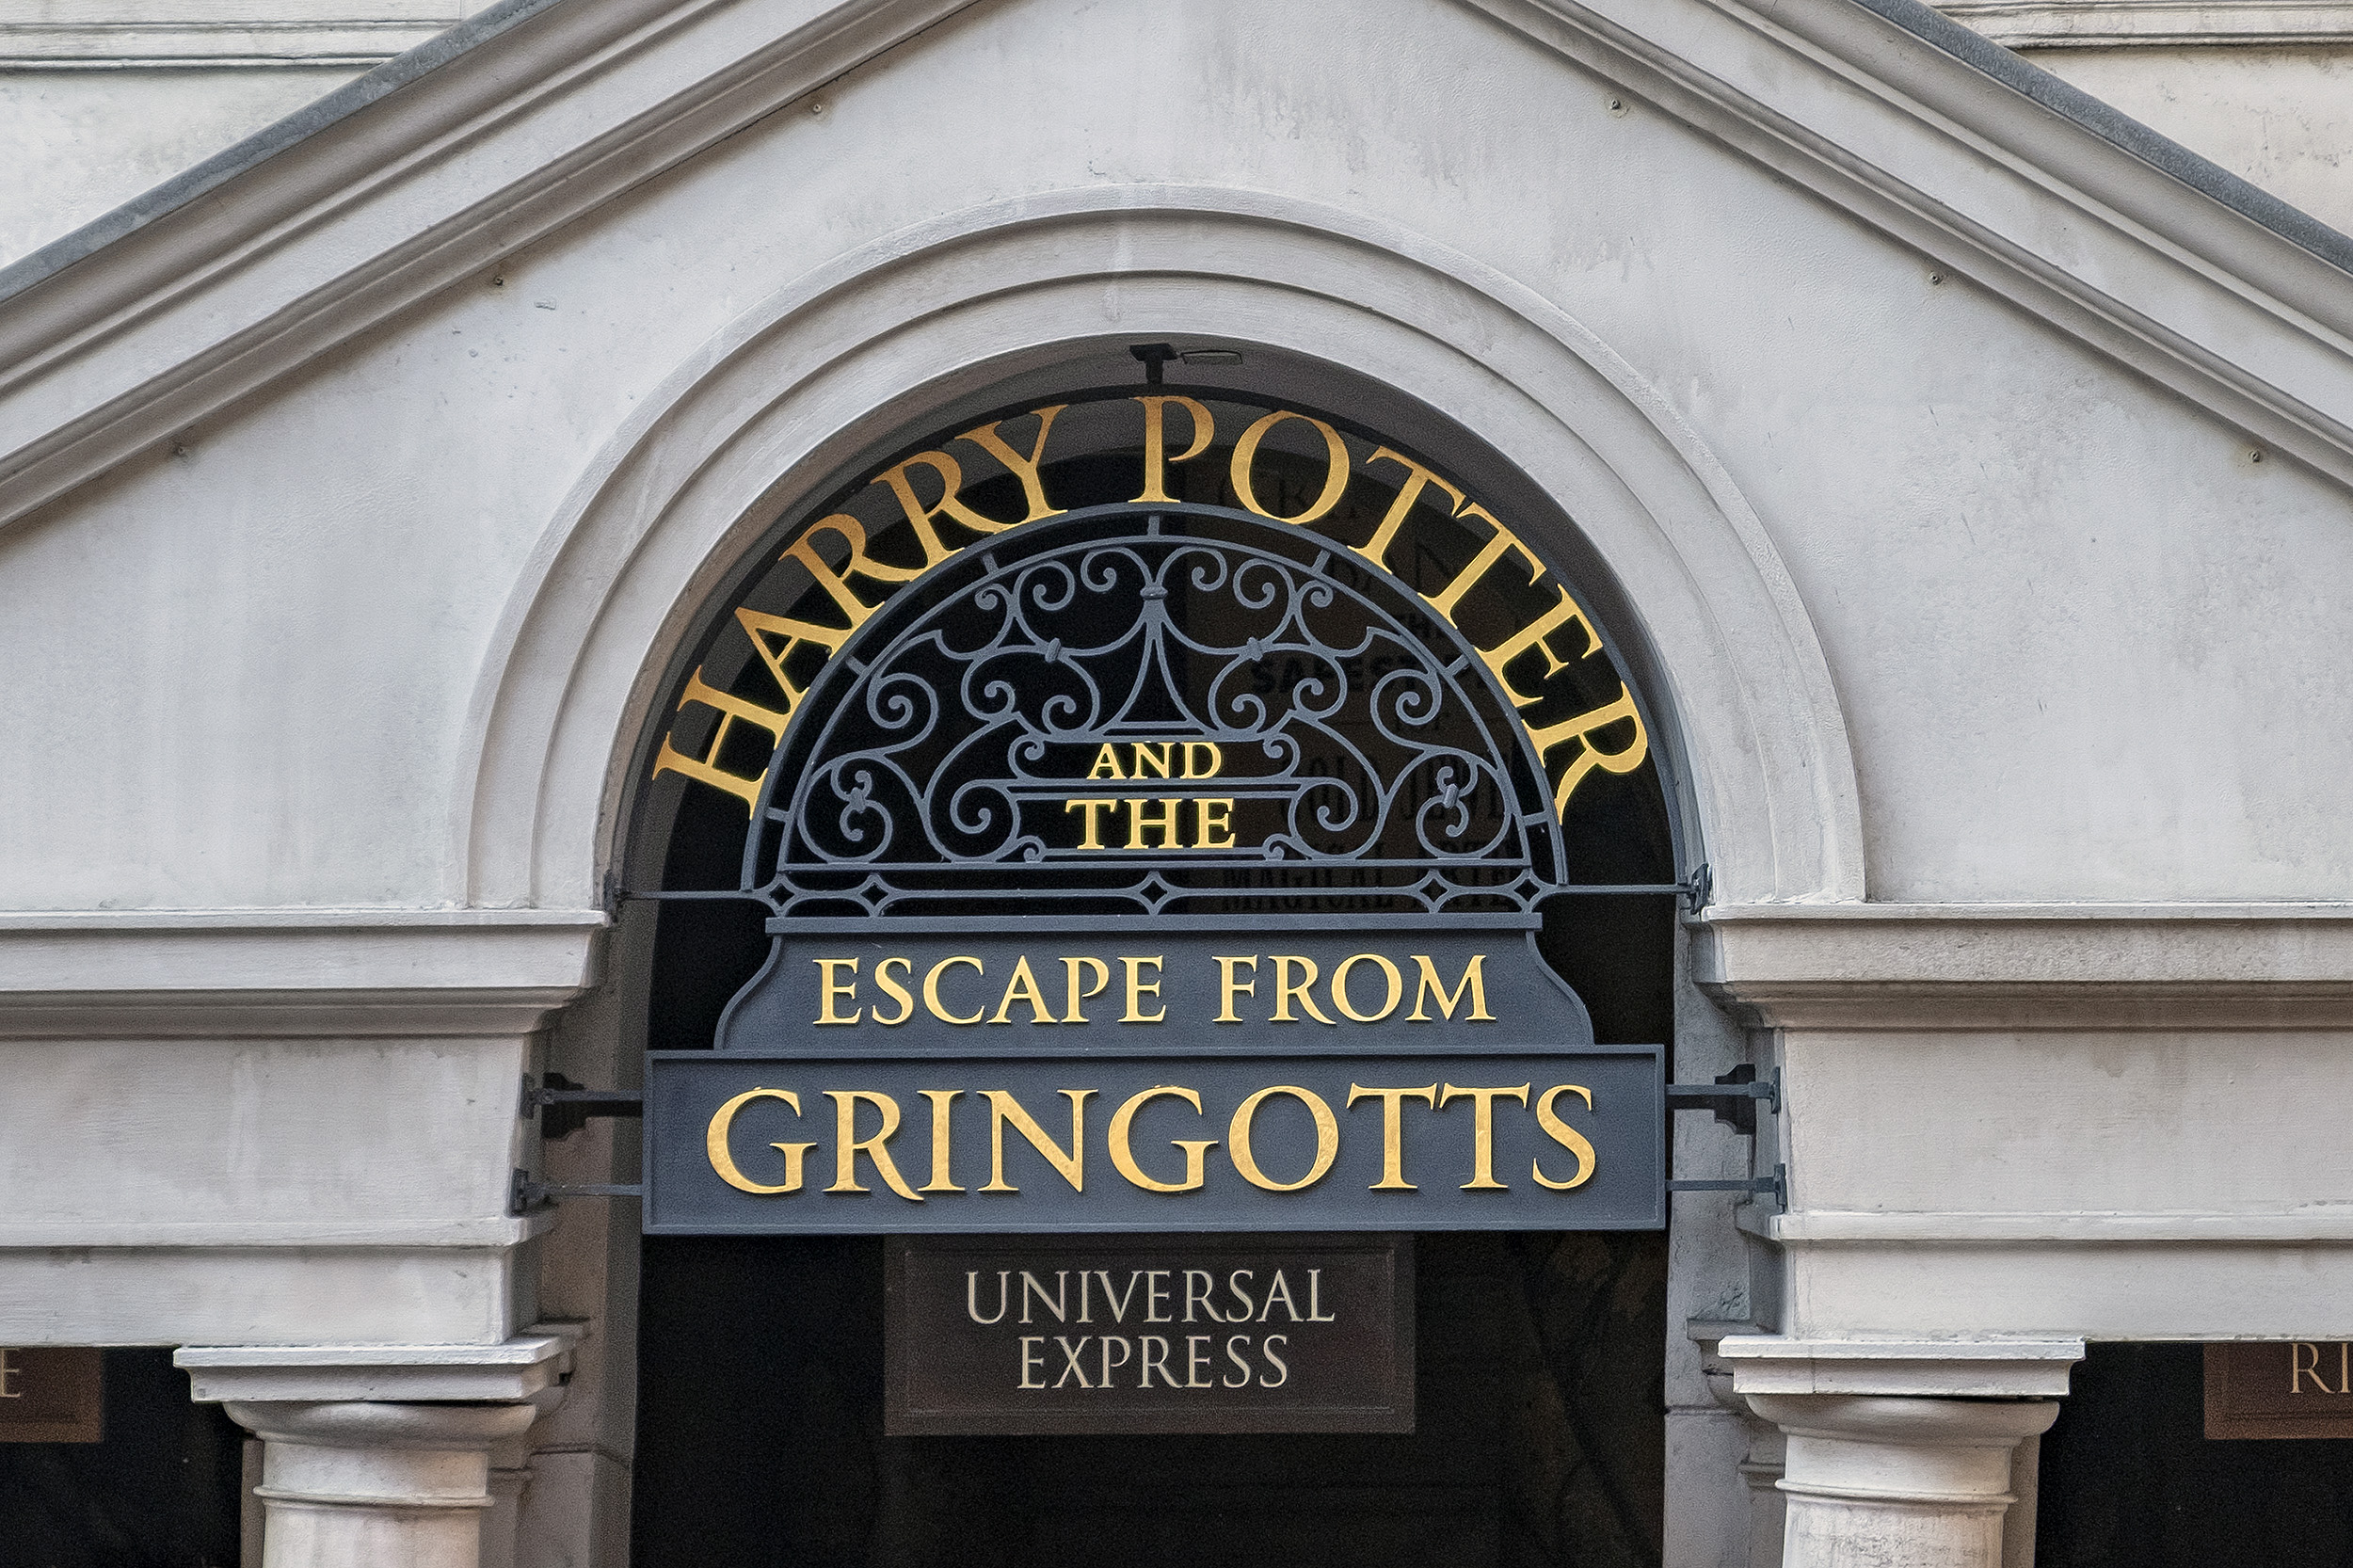 Harry Potter and the Escape from Gringotts. The wizarding world of harry potter.